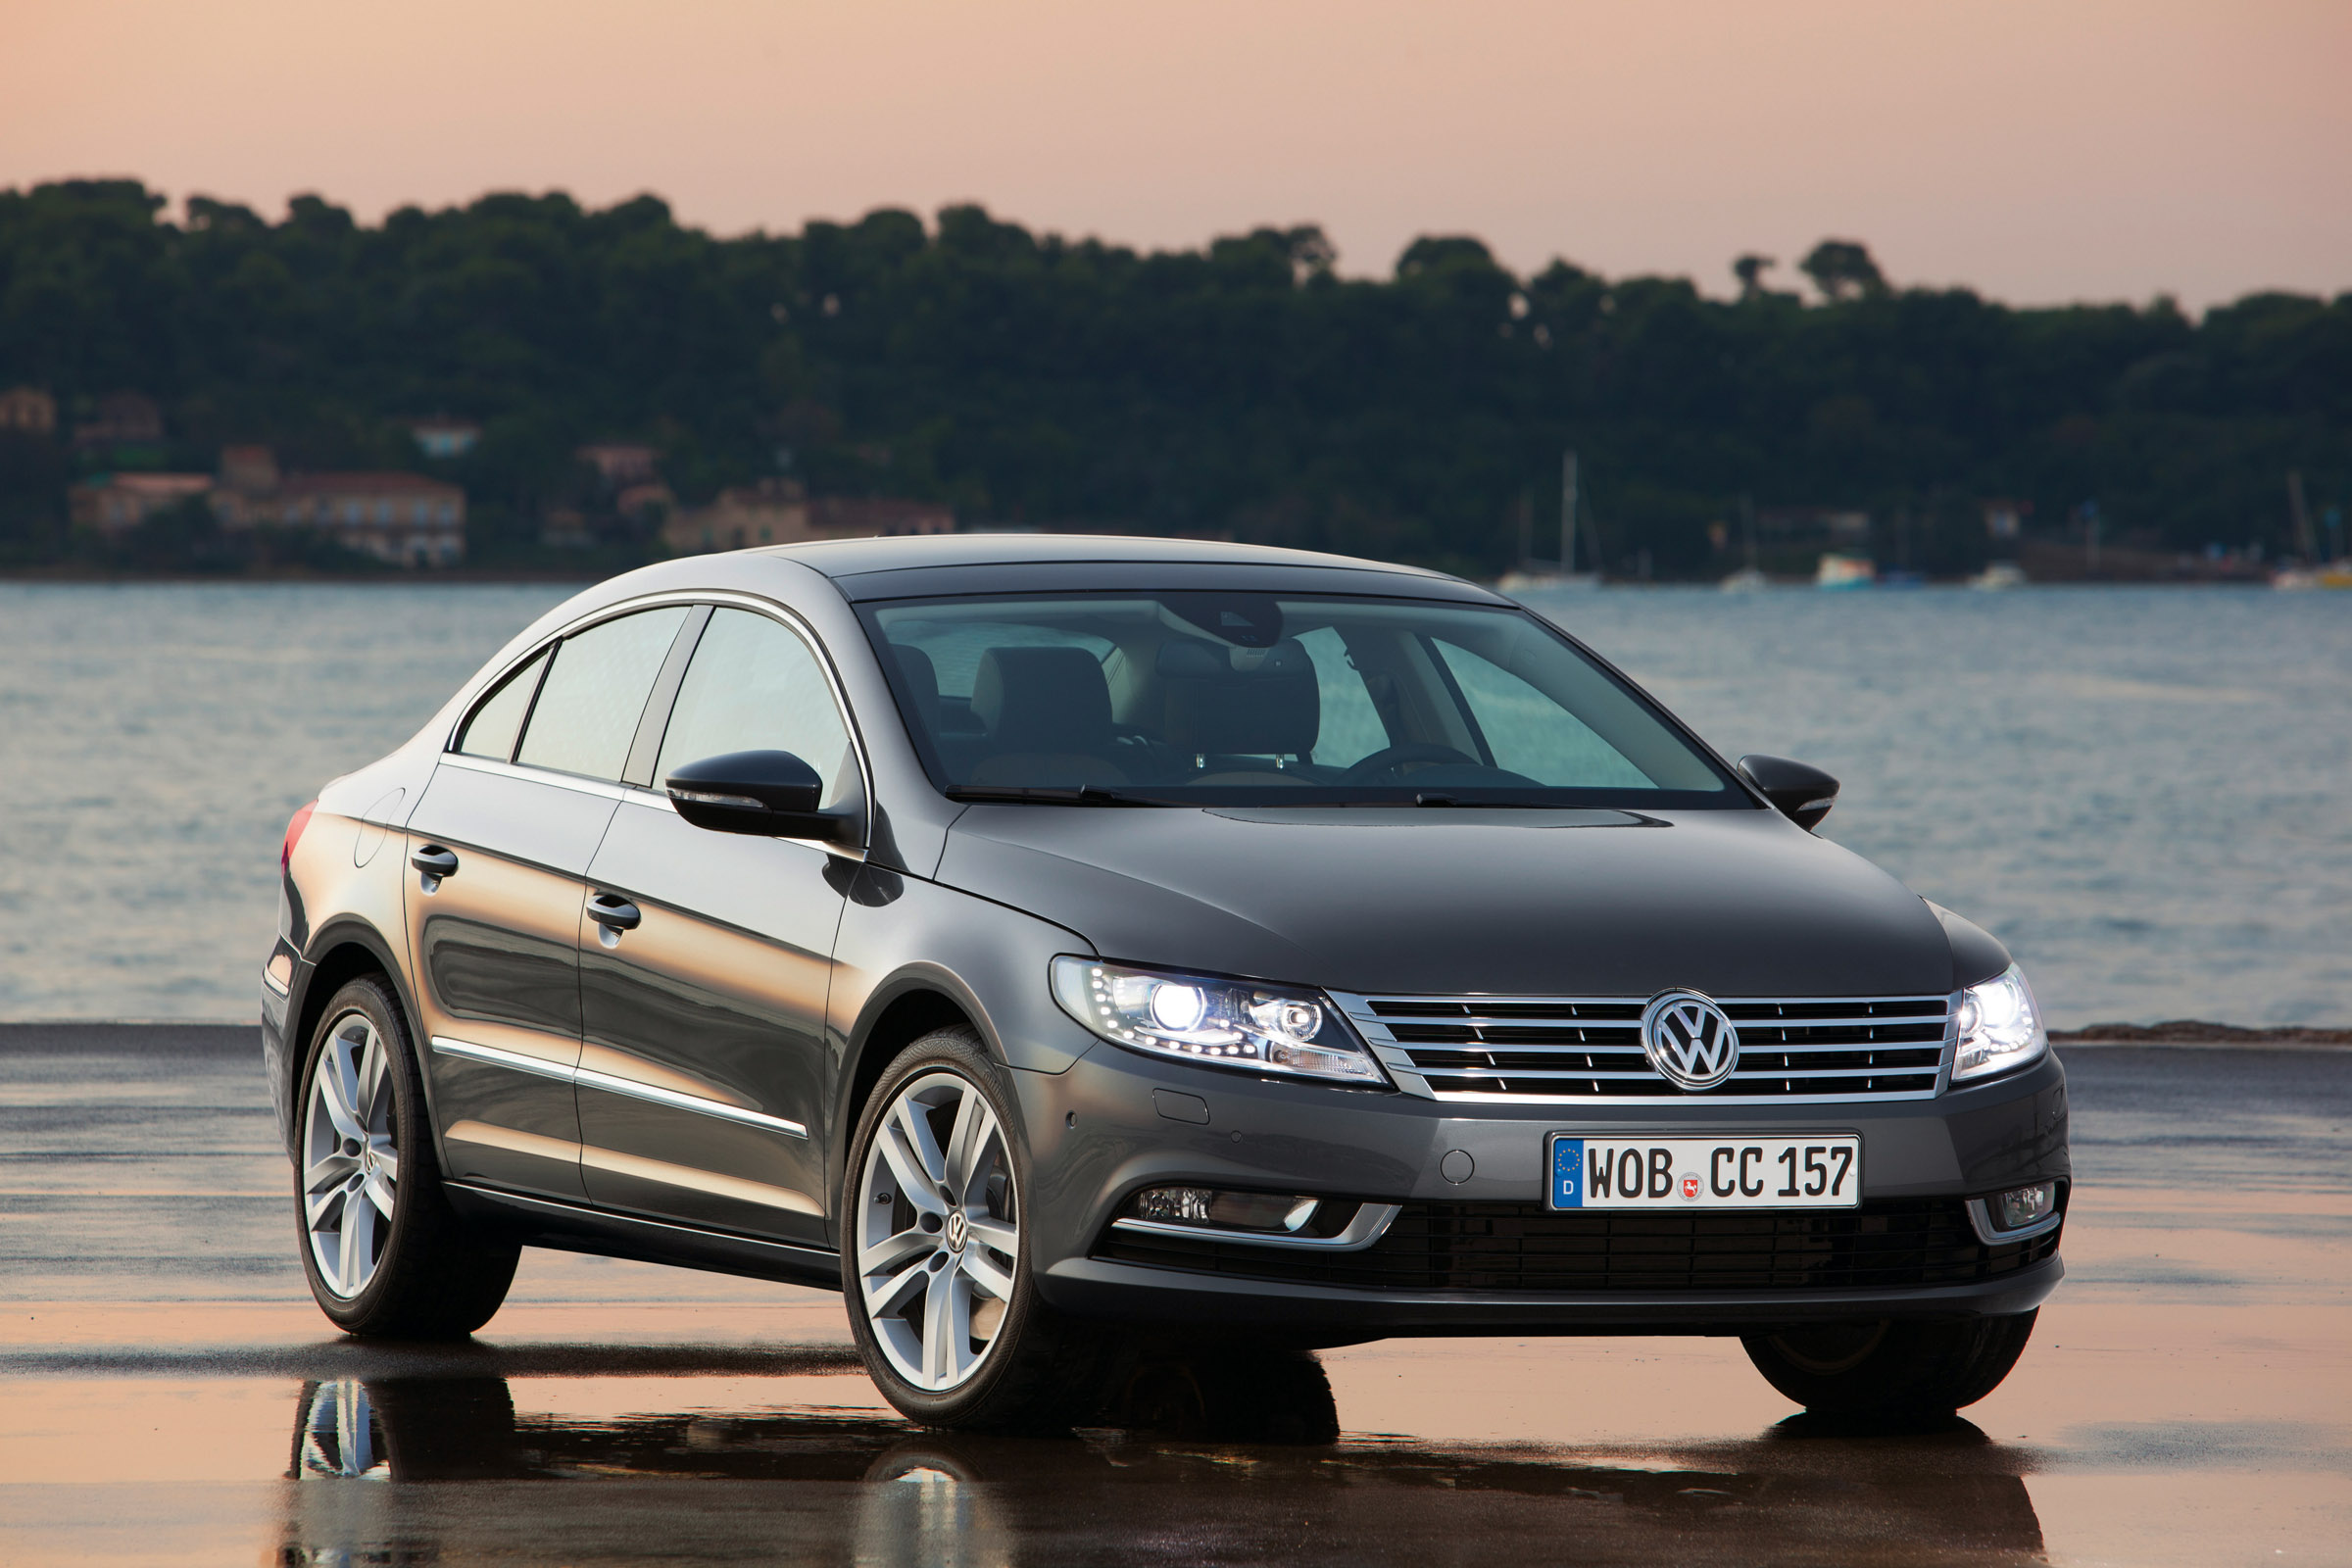 2012 volkswagen passat cc picture 63567. Black Bedroom Furniture Sets. Home Design Ideas